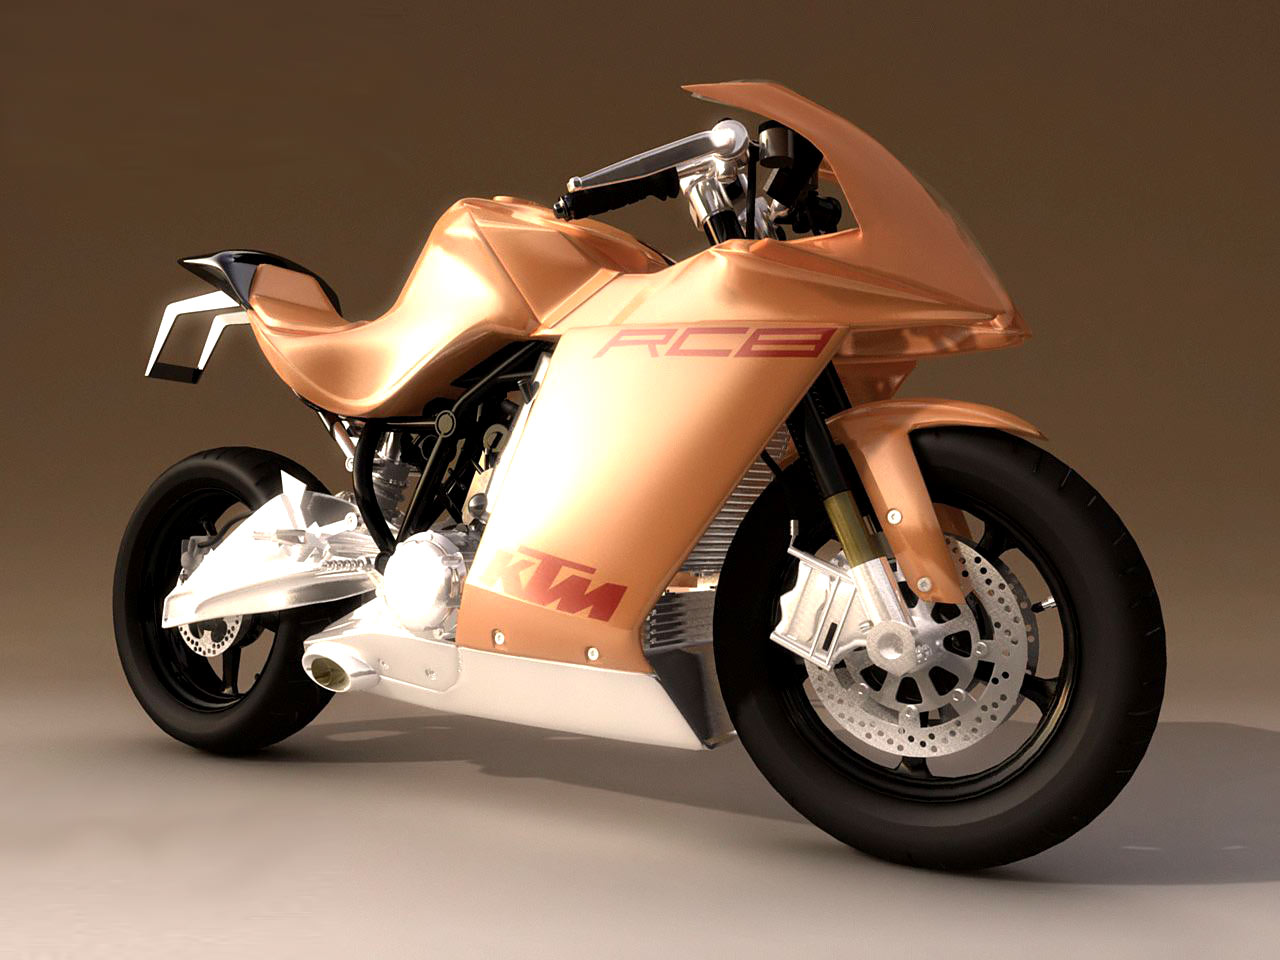 3D Bike Wallpaper High Quality WallpapersWallpaper DesktopHigh 1280x960